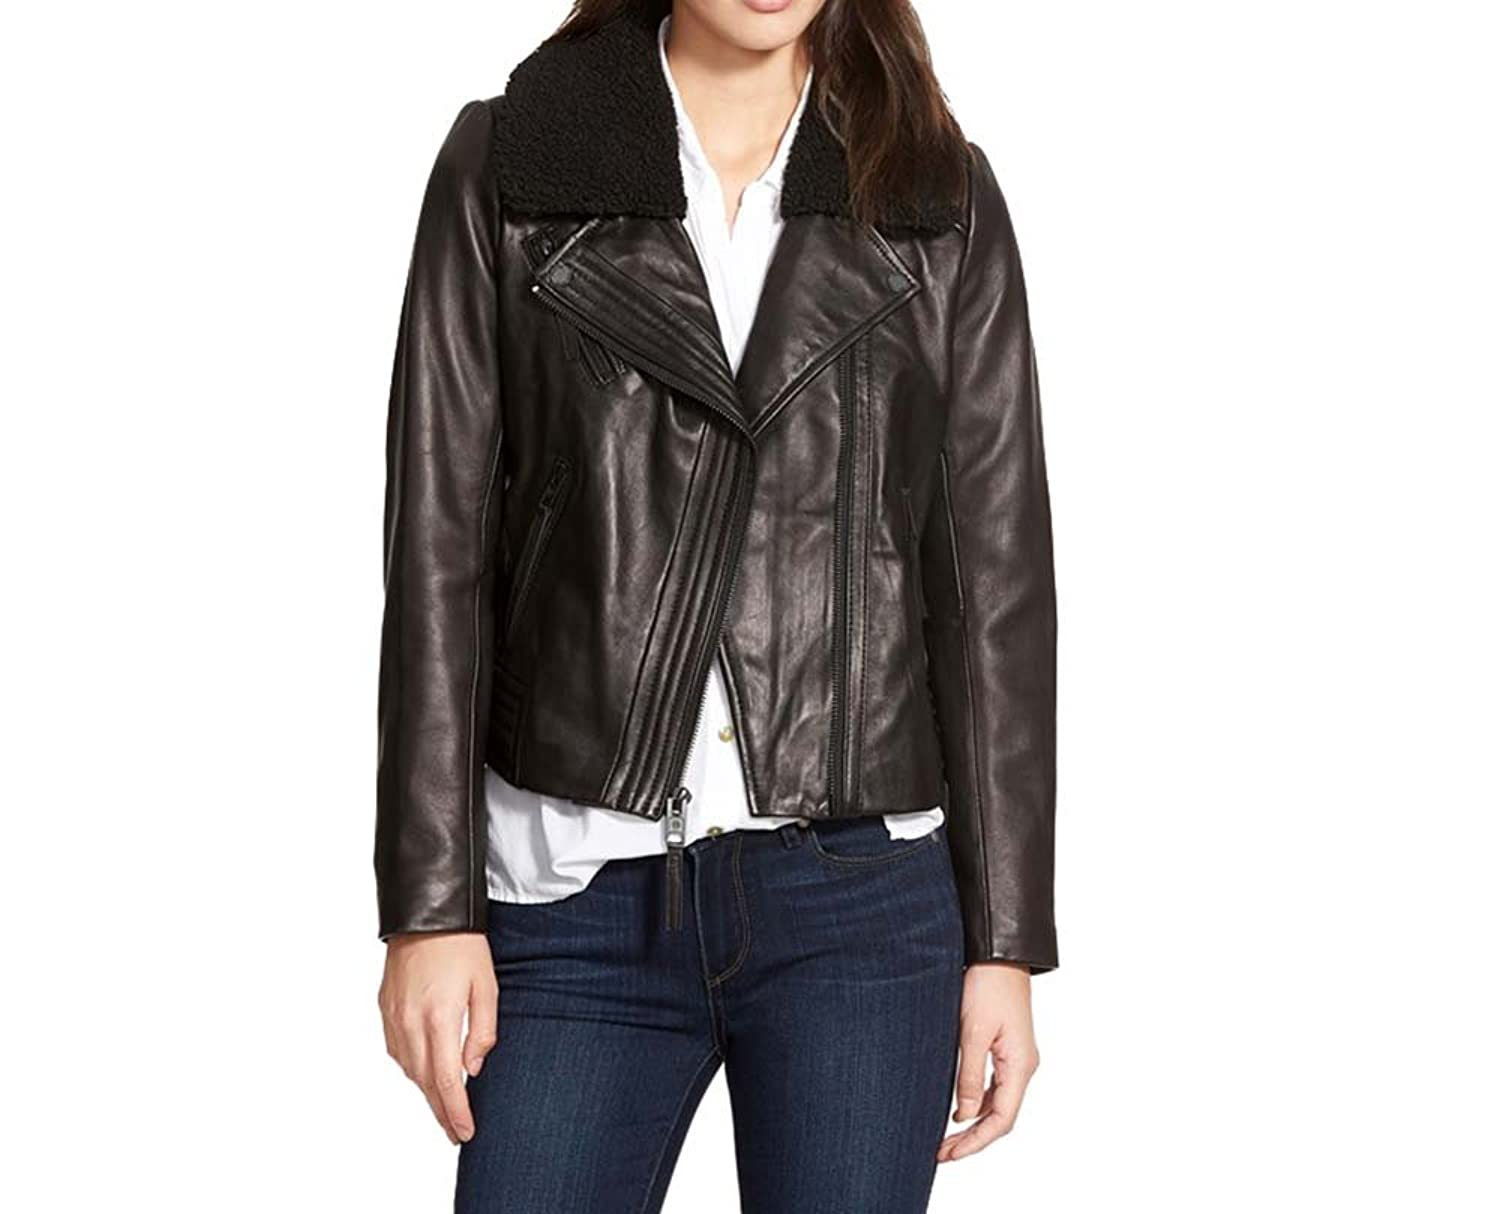 6a61139851a4 Michael Kors Moto Leather Jacket with Fur Collar at Amazon Women s Coats  Shop